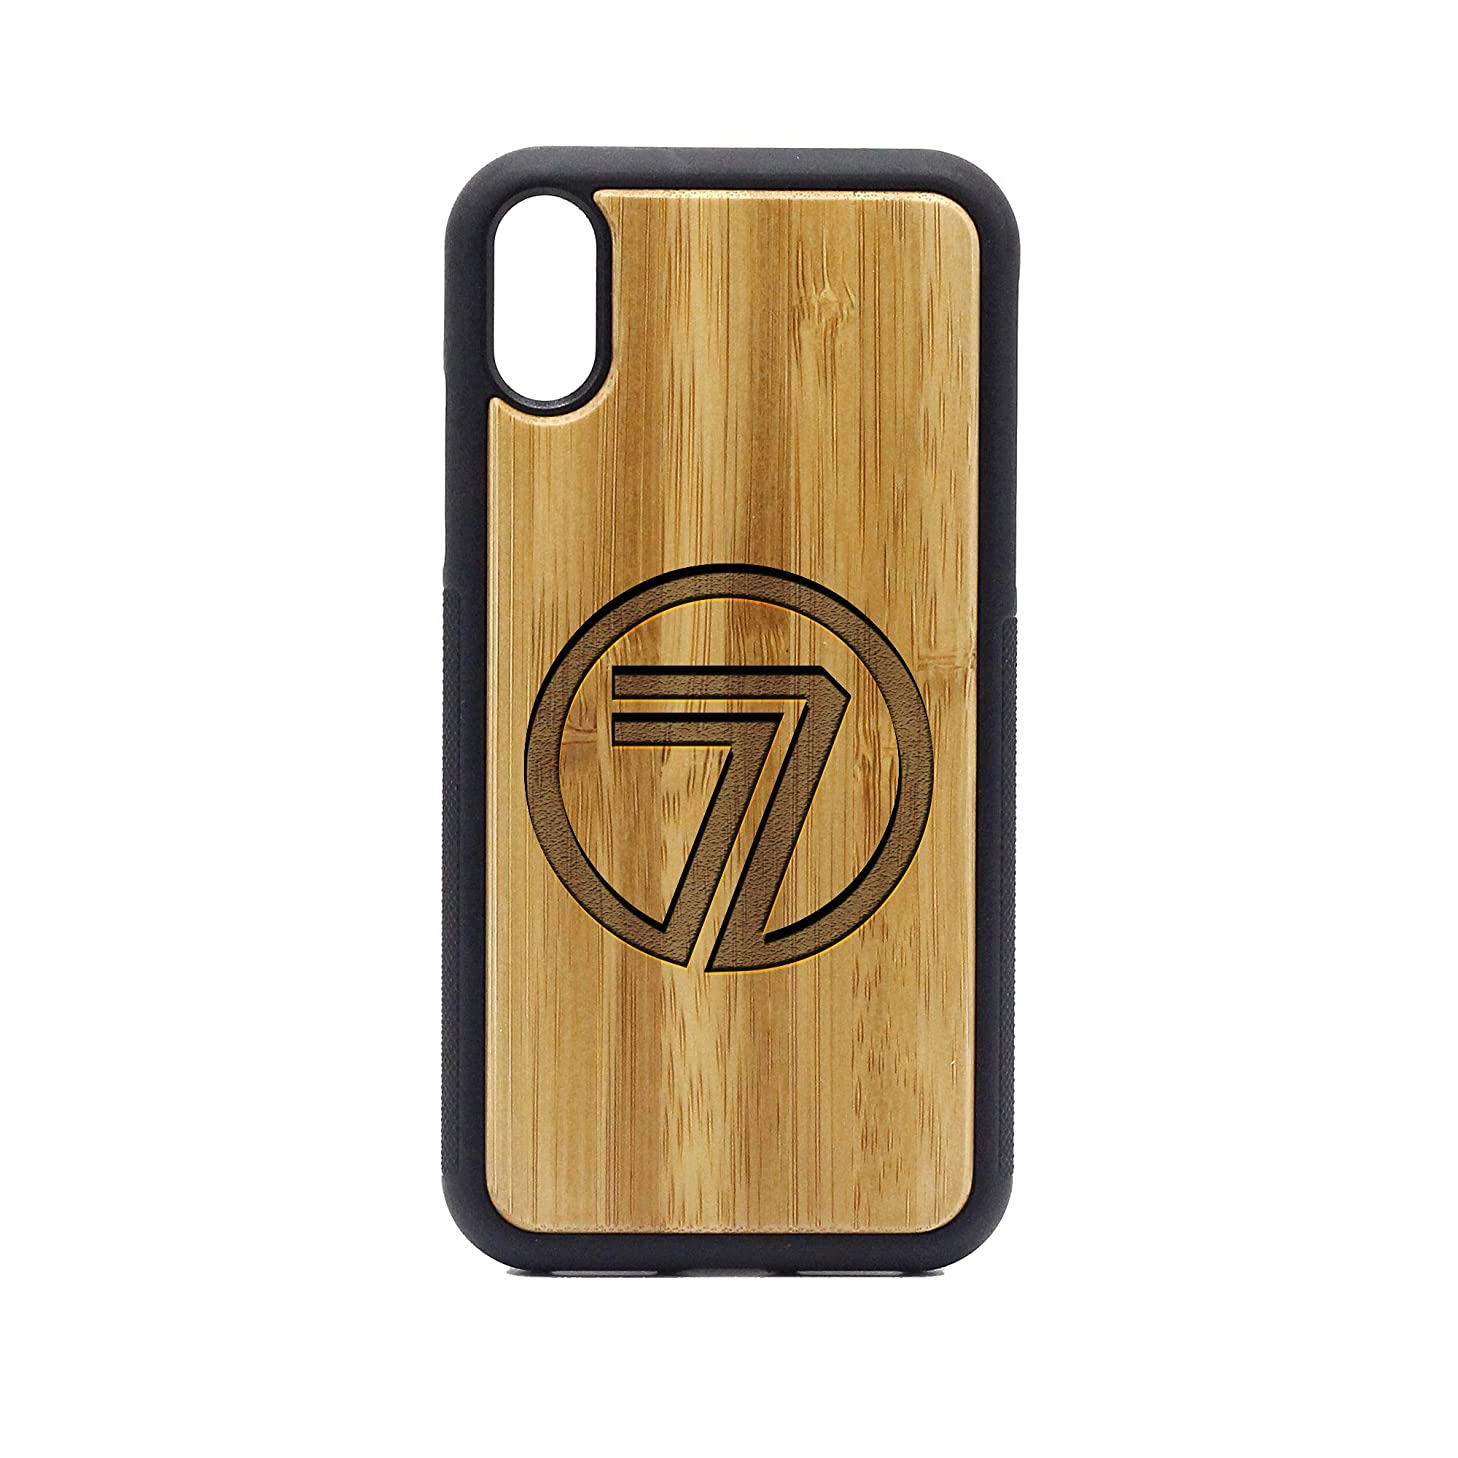 Logo 7 TV - iPhone XR Case - Bamboo Premium Slim & Lightweight Traveler Wooden Protective Phone Case – Unique, Stylish & Eco-Friendly - Designed for iPhone XR